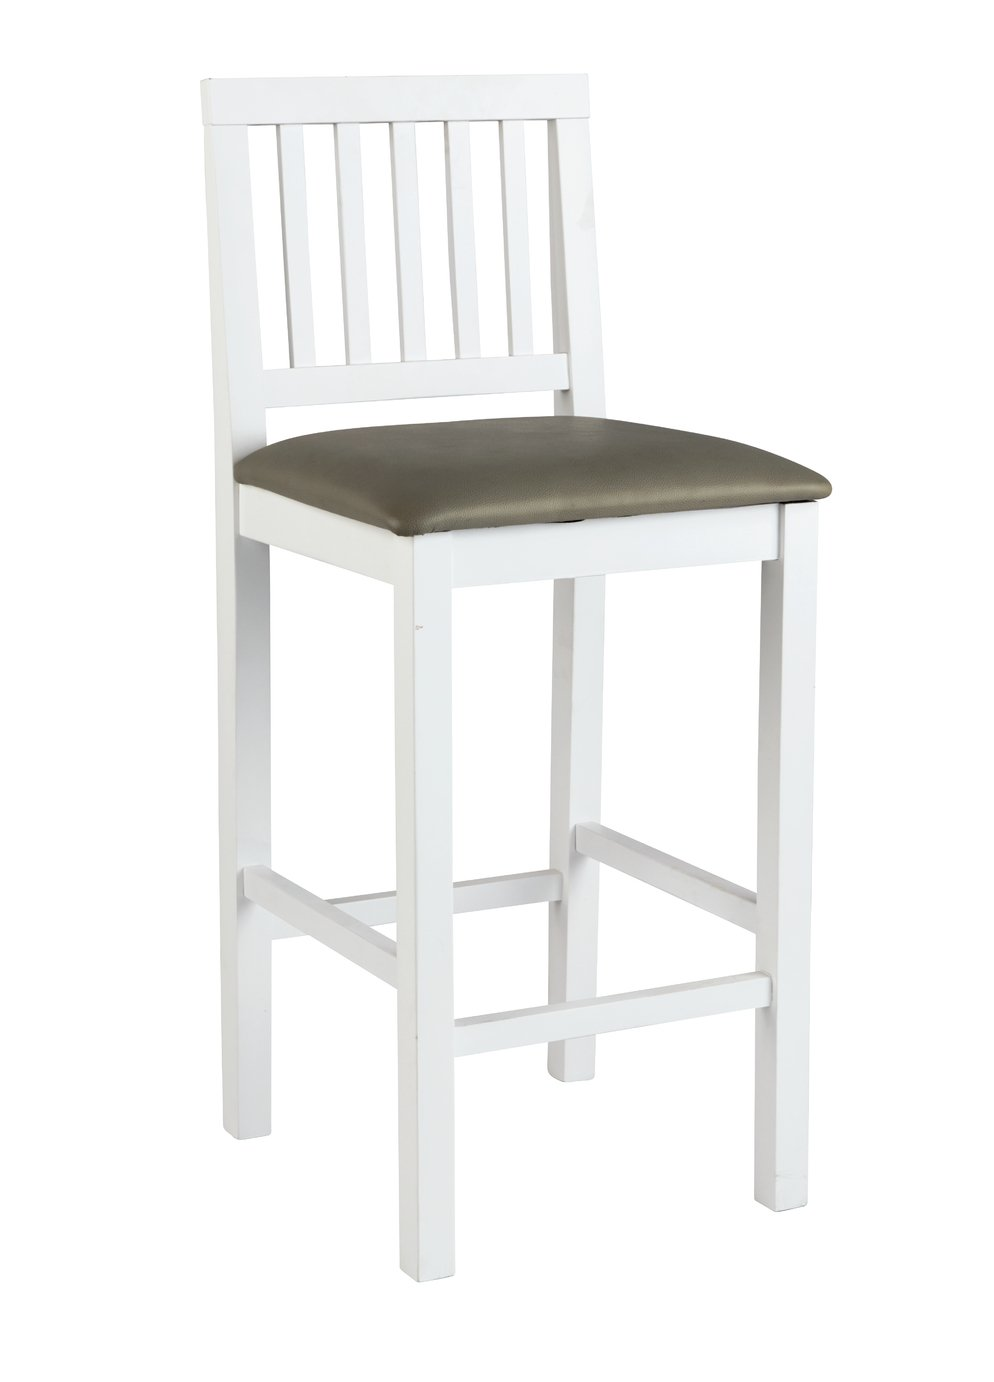 chair stool argos slipper chairs under 100 bar stools breakfast kitchen home kendal two tone